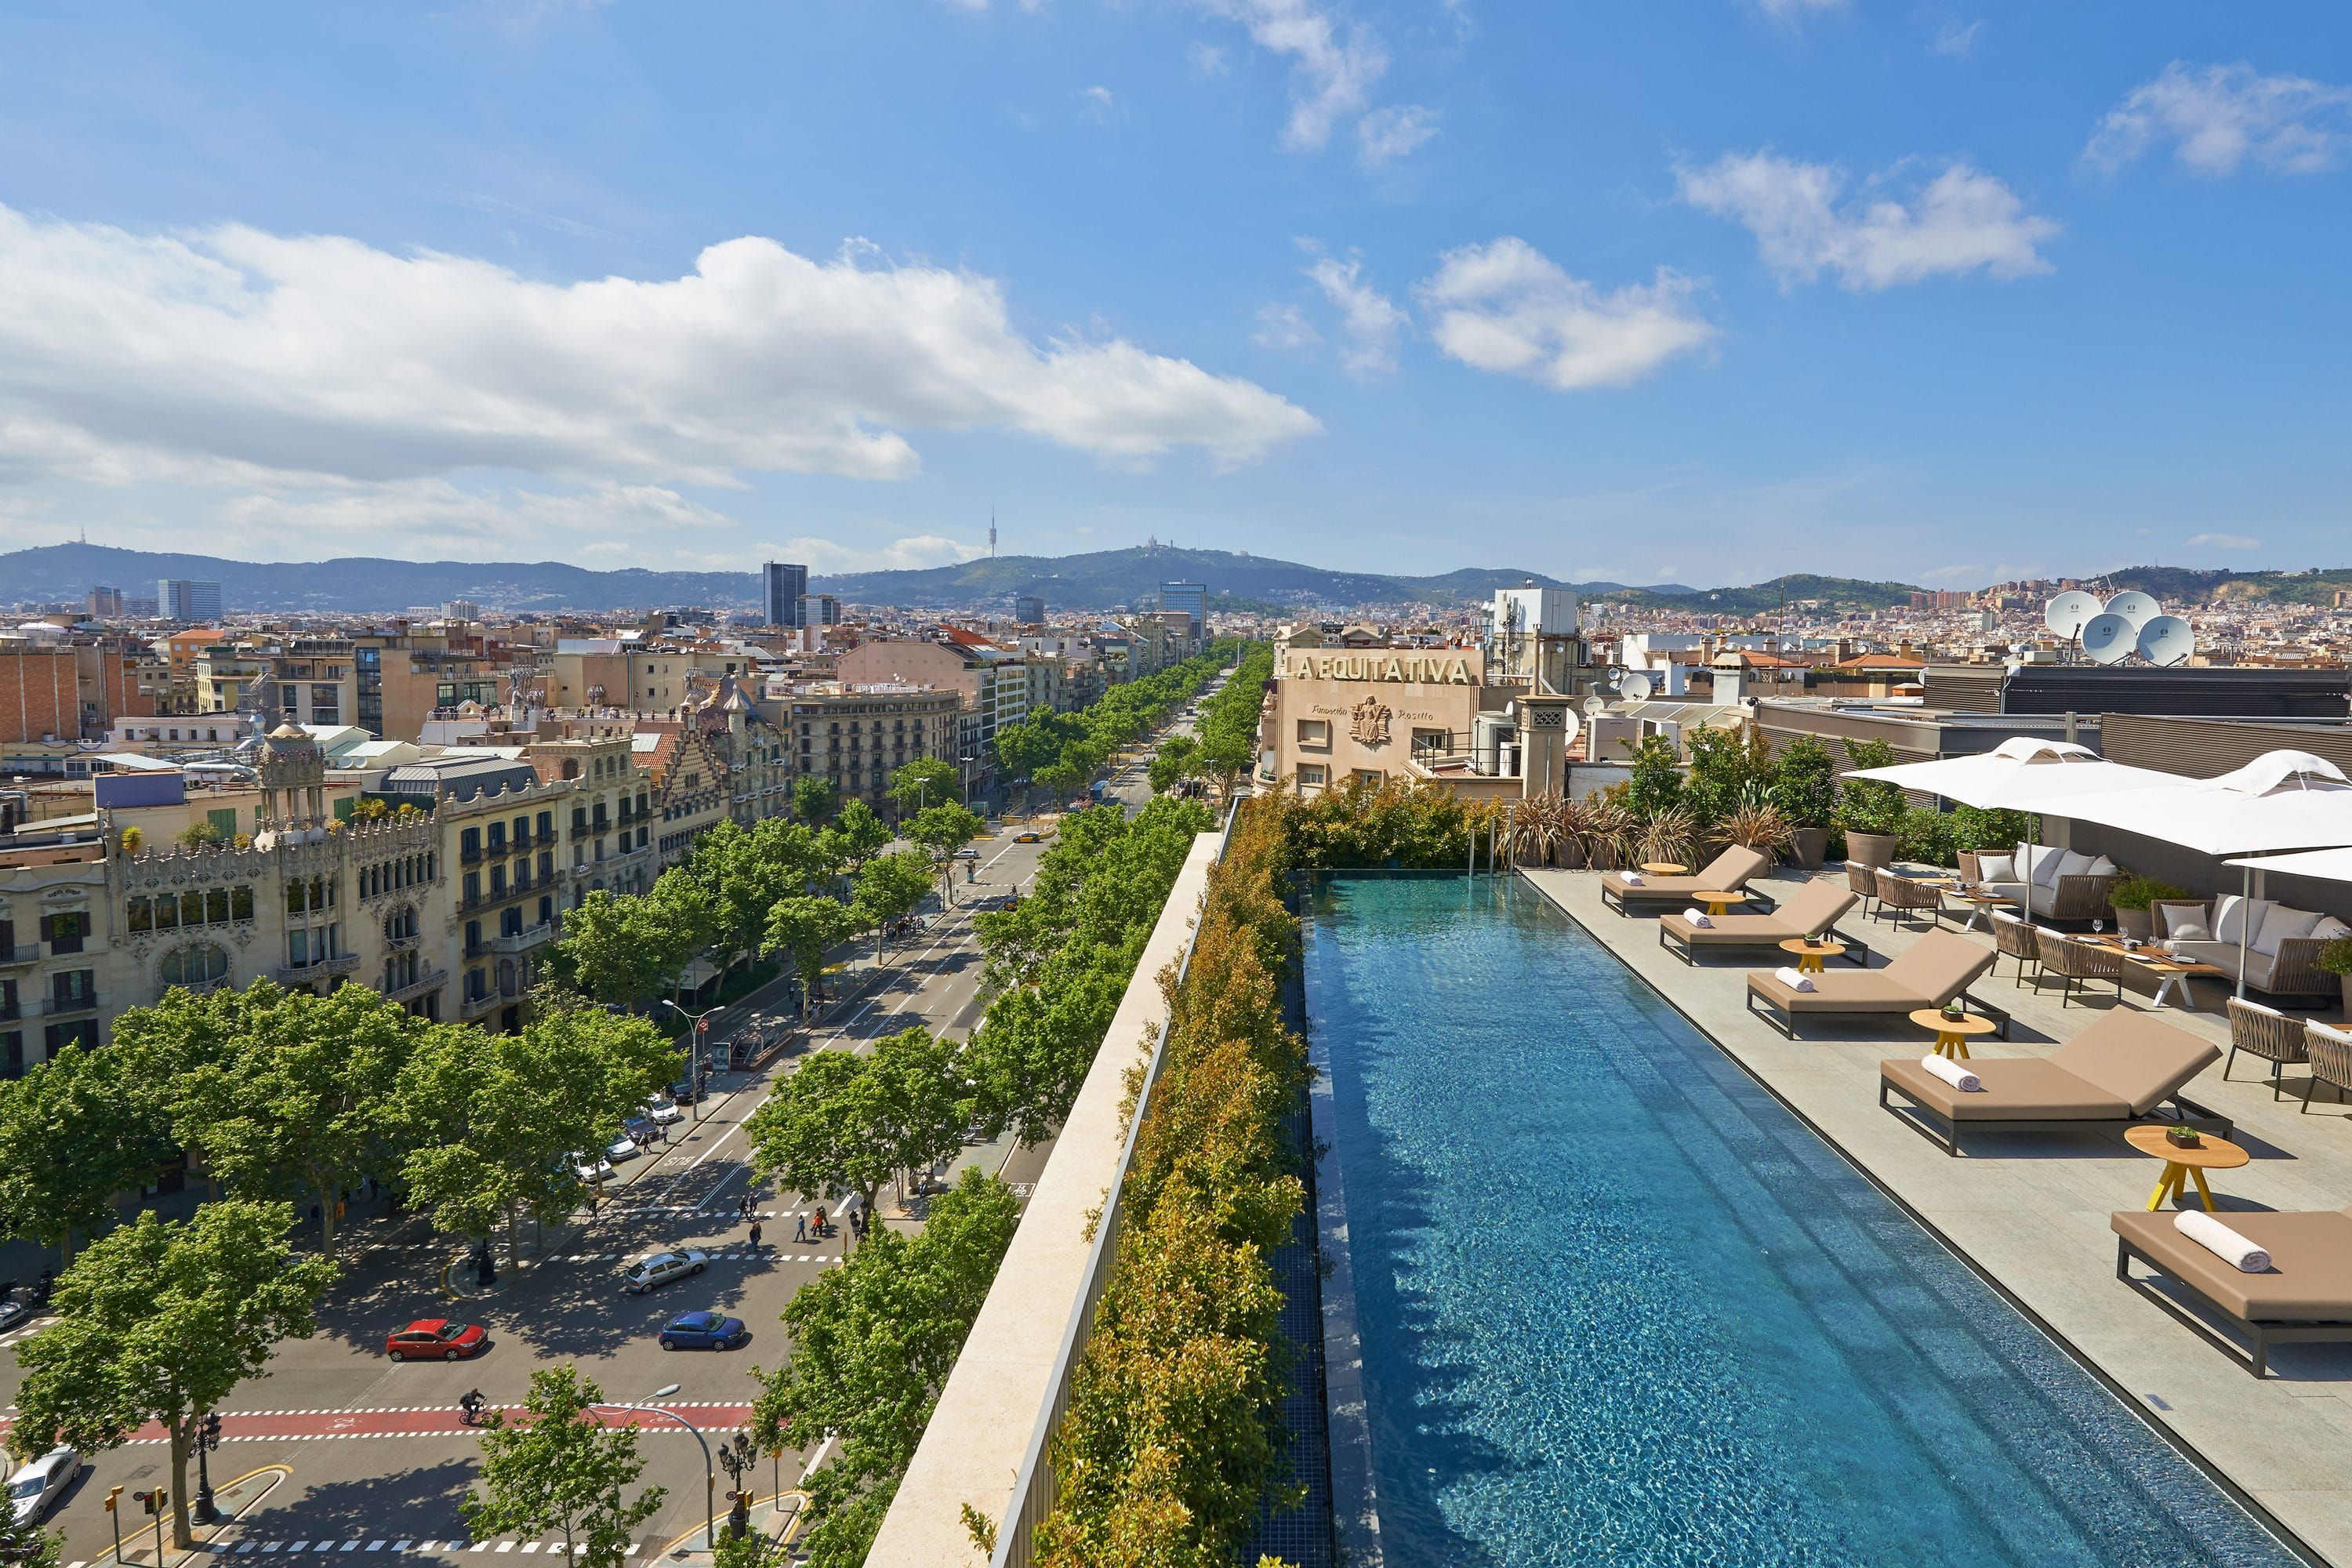 The rooftop pool and bar, Terrat, at Mandarin Oriental, Barcelona